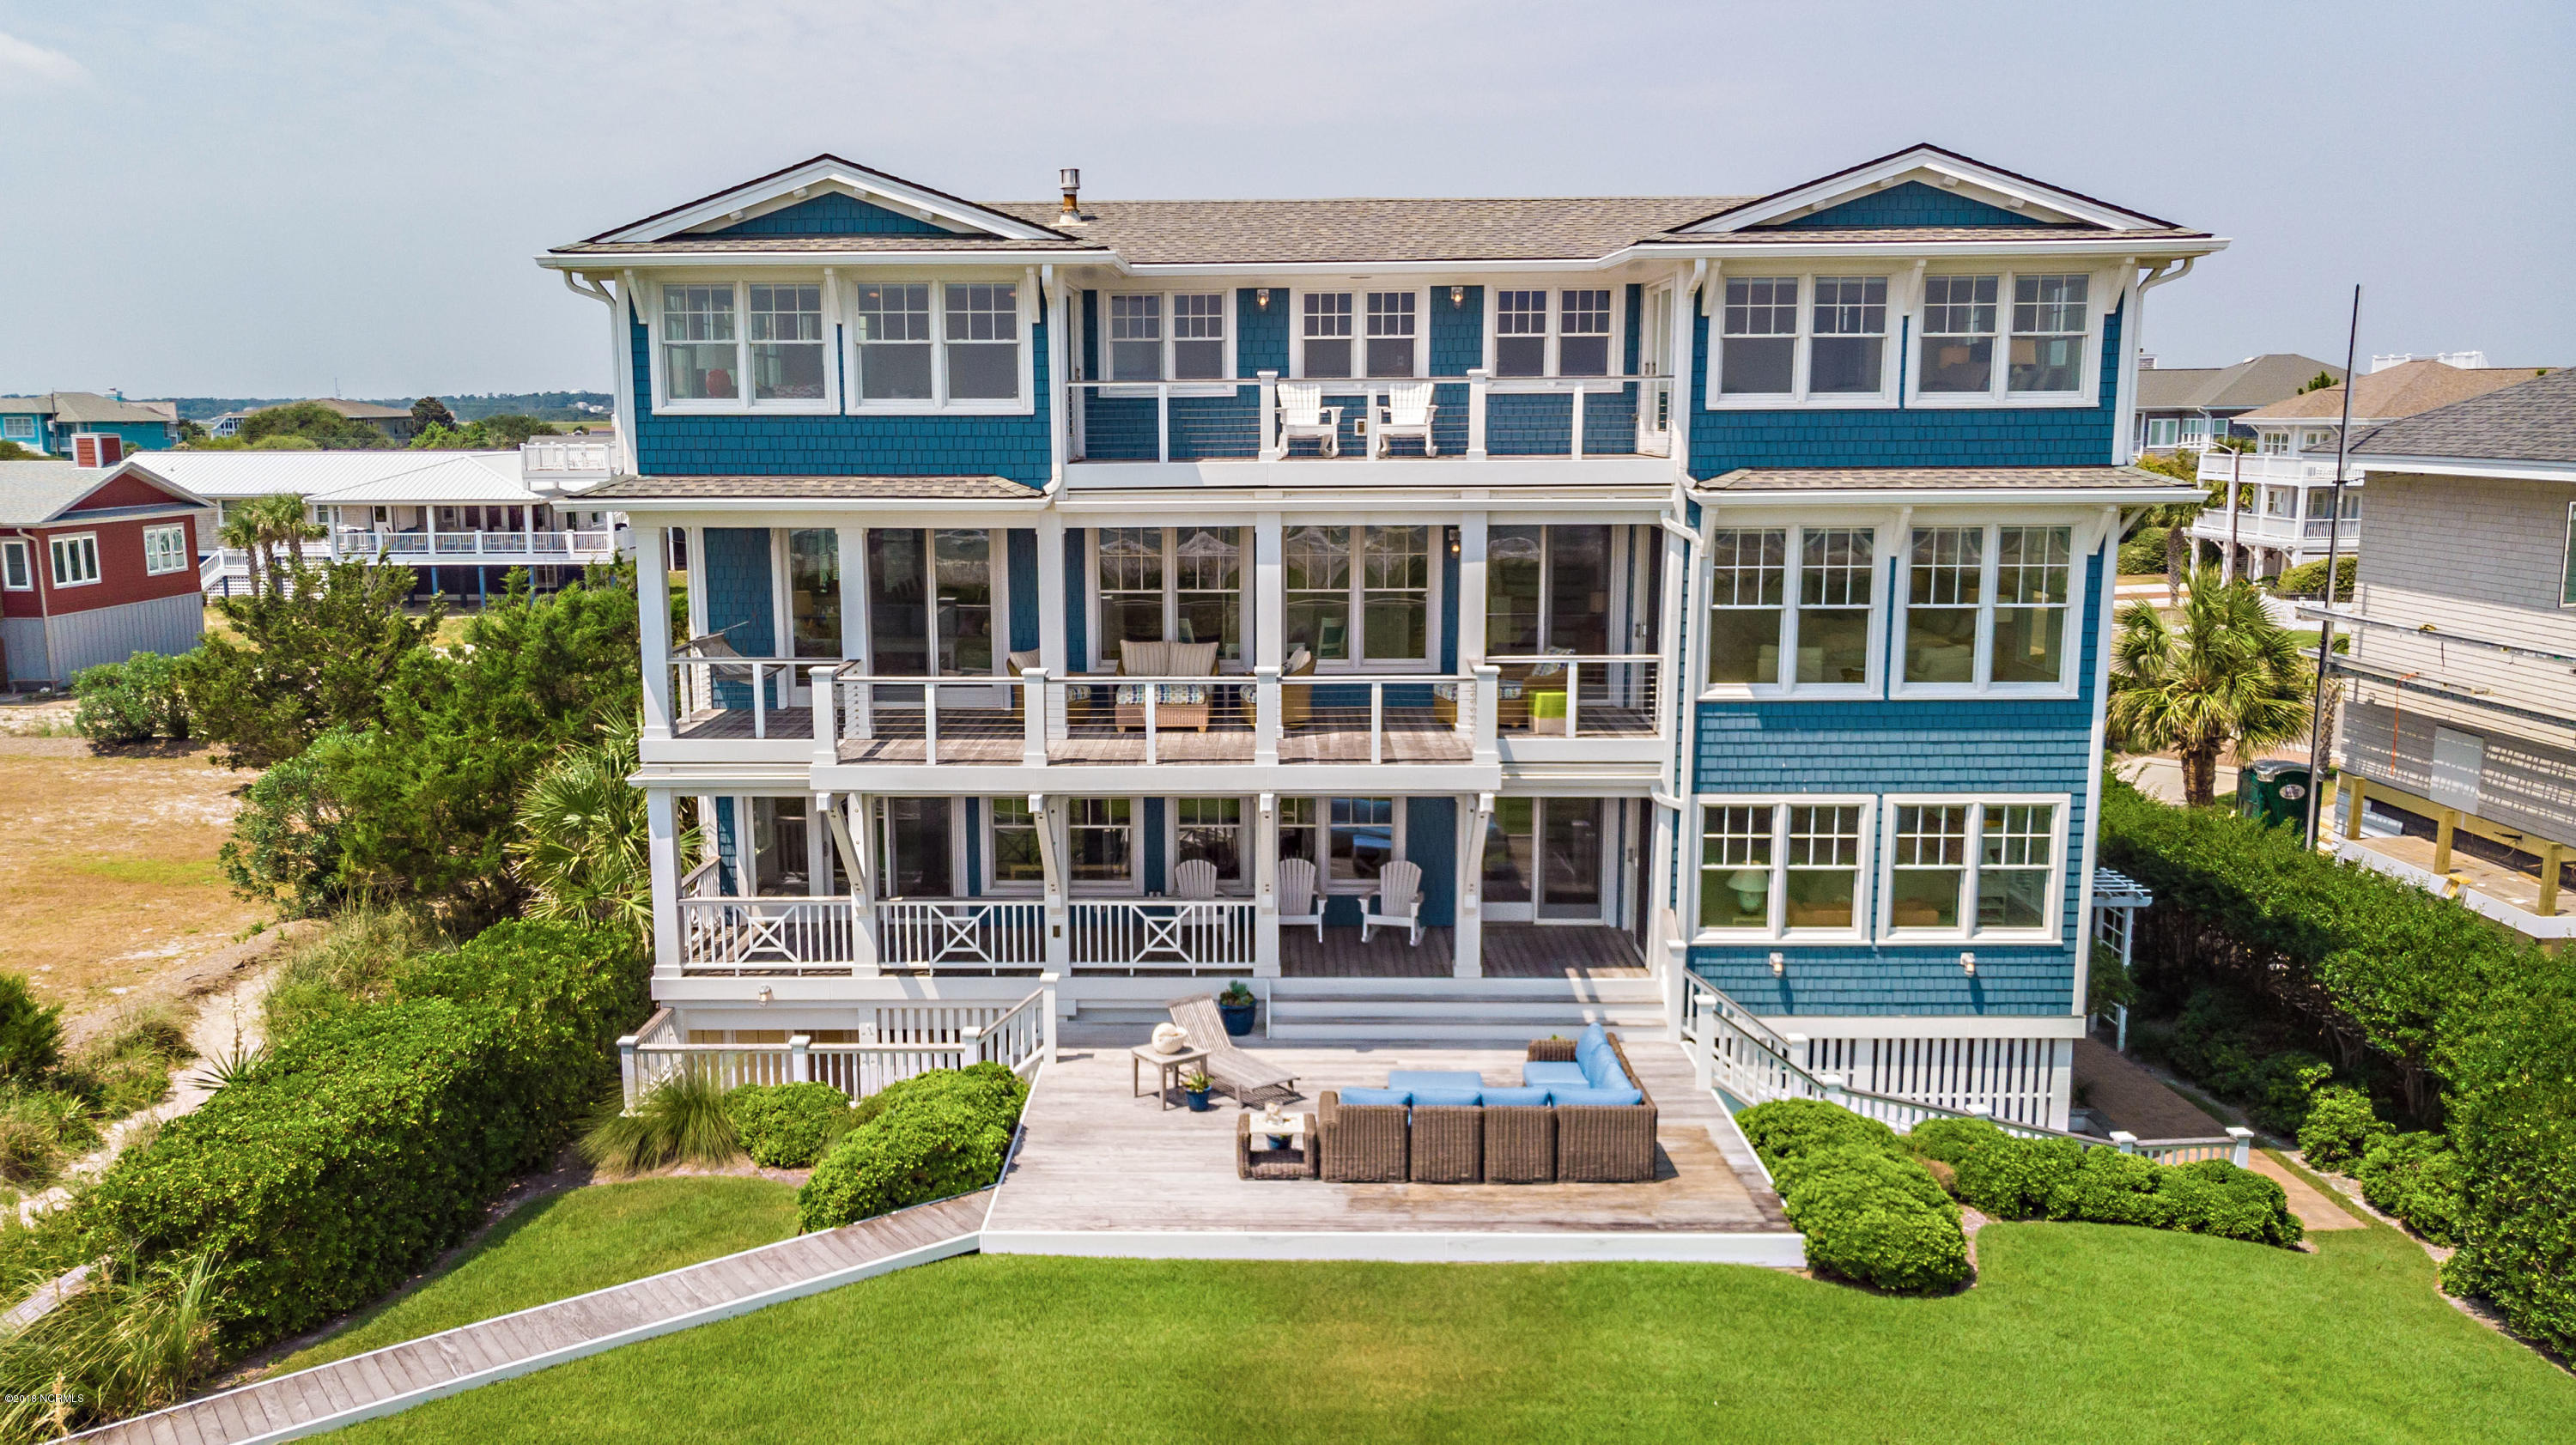 Property for sale at 14 Southridge Road, Wrightsville Beach,  NC 28480